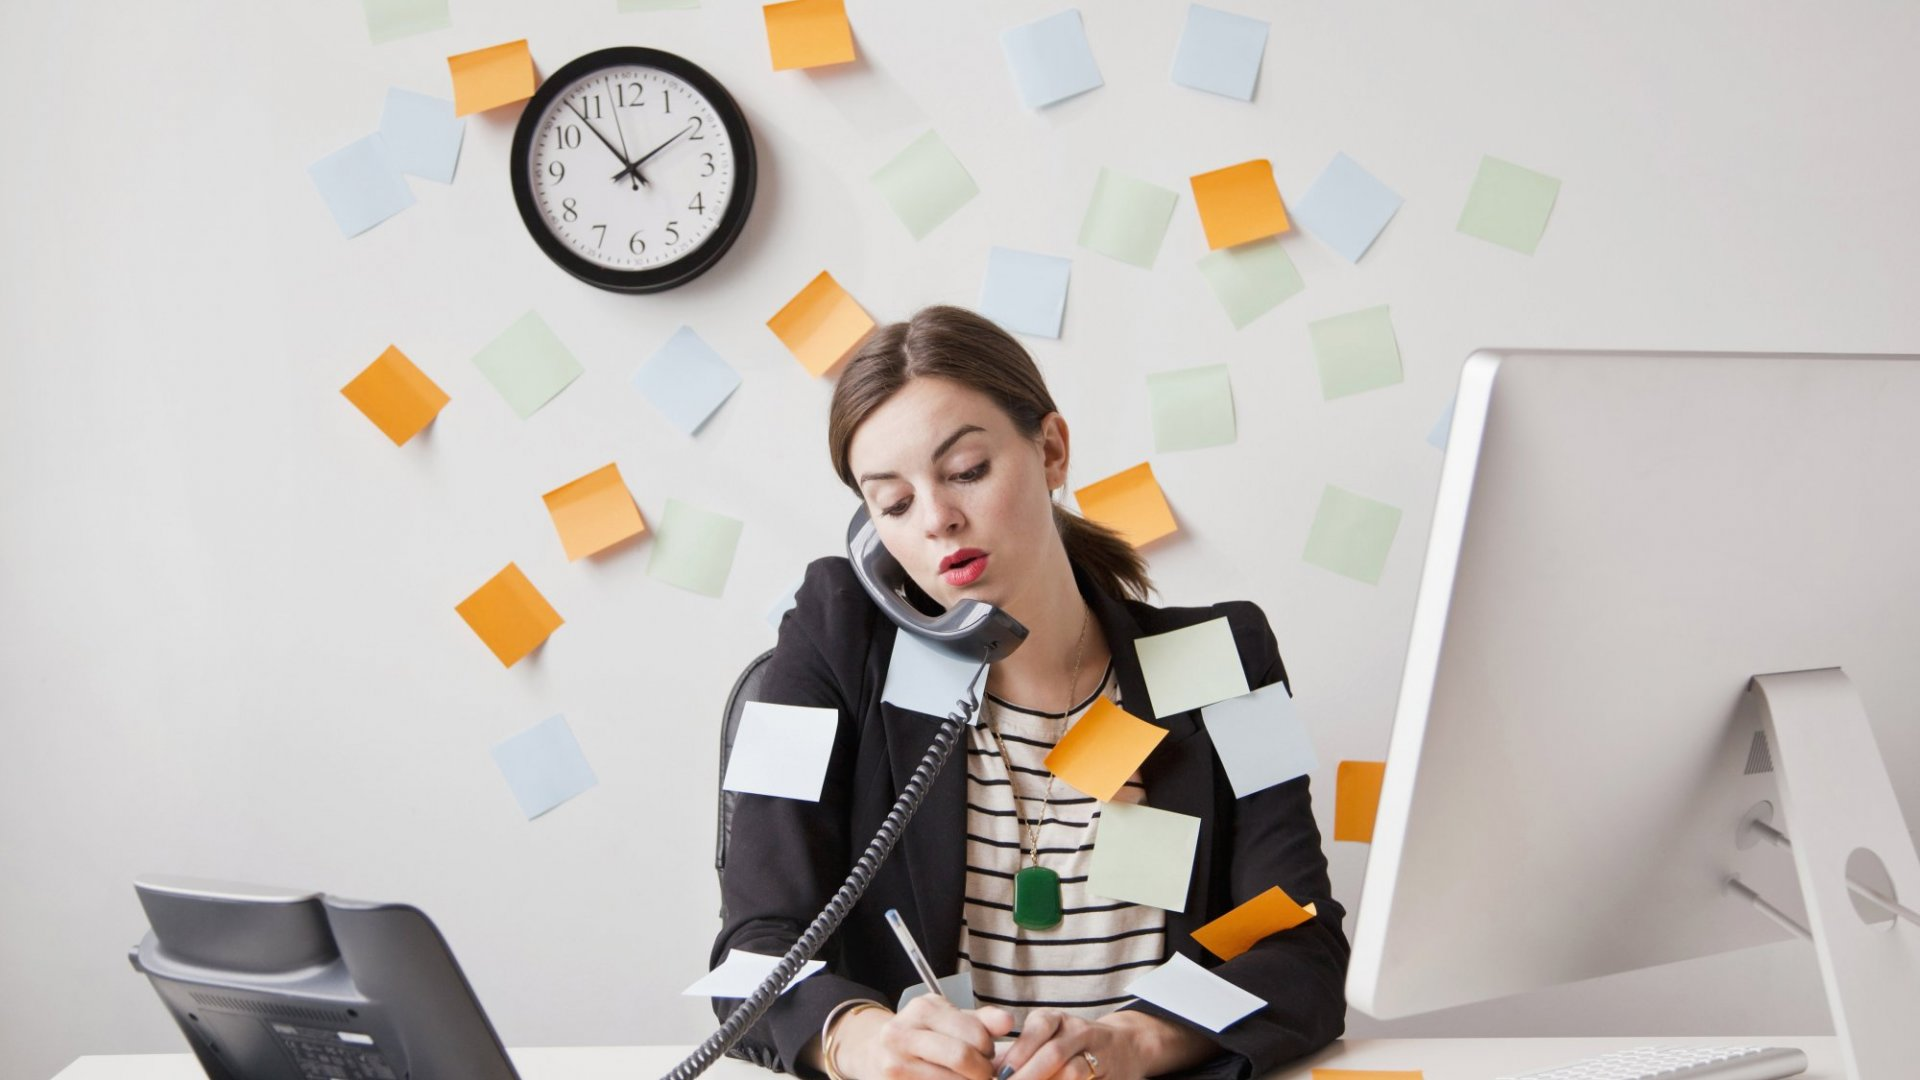 How to Improve Productivity by Eliminating the 'Busy' Mentality